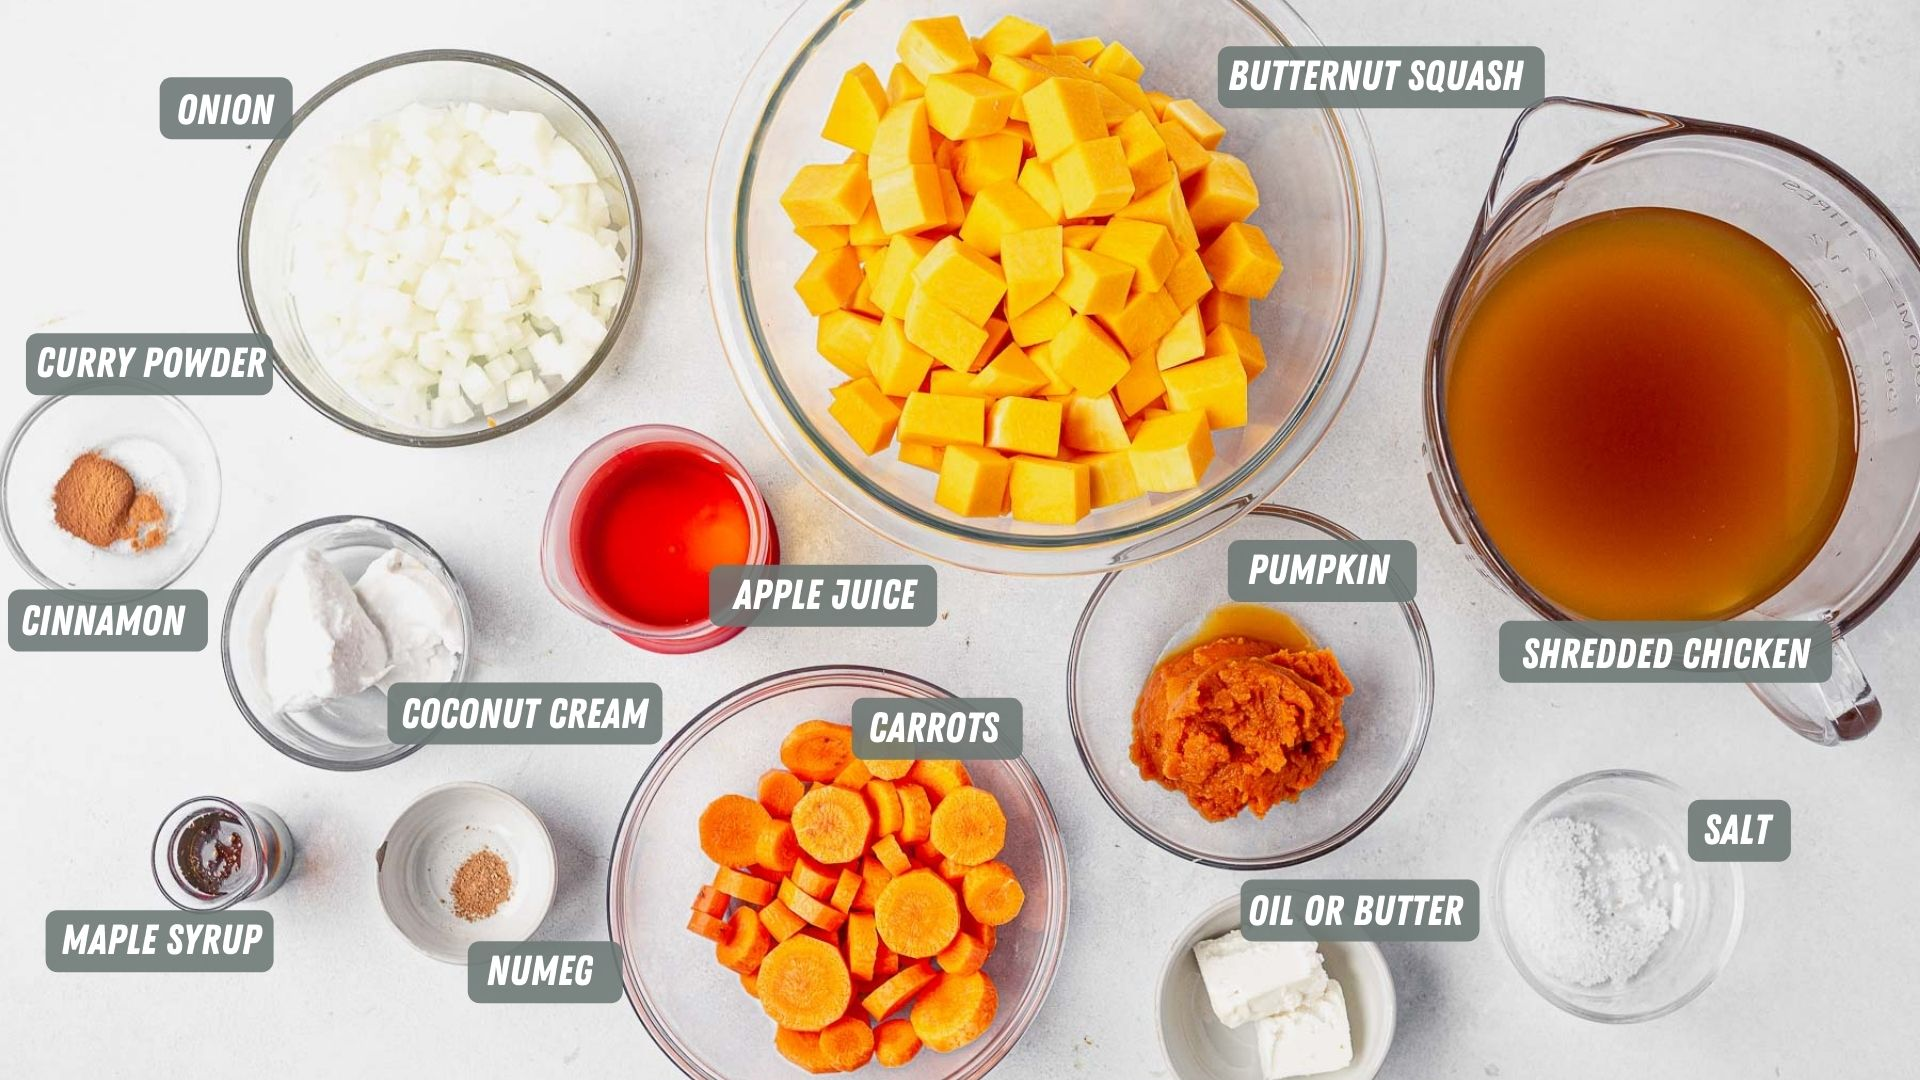 panera autumn squash soup ingredients measured out on a white table